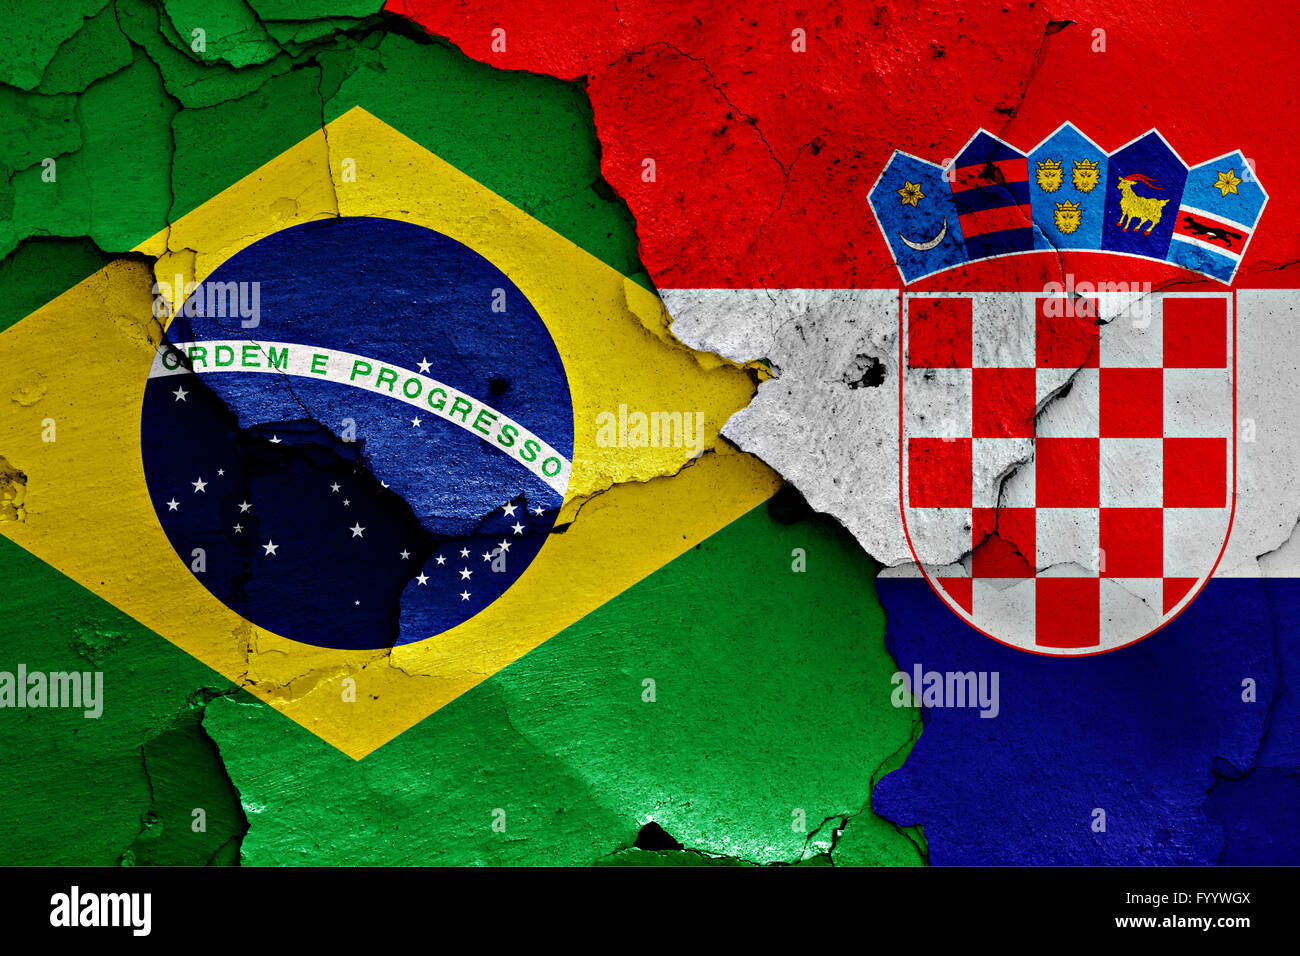 flags of Brazil and Croatia painted on cracked wall - Stock Image